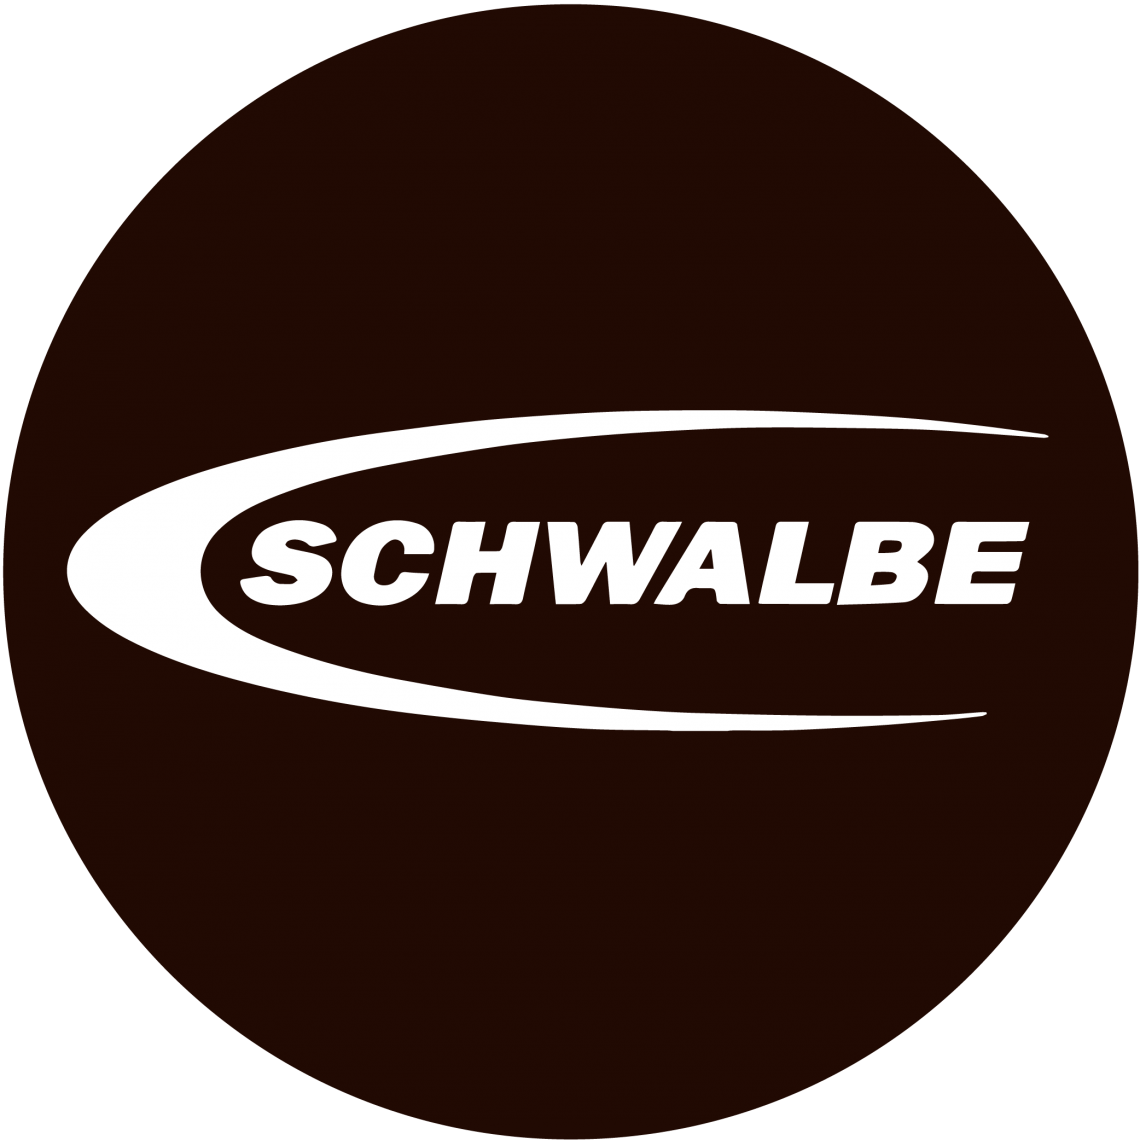 8bar crit 2019 sponsors schwalbe 1140x1140 - 8bar Pathfinder - Gravel - 1 day